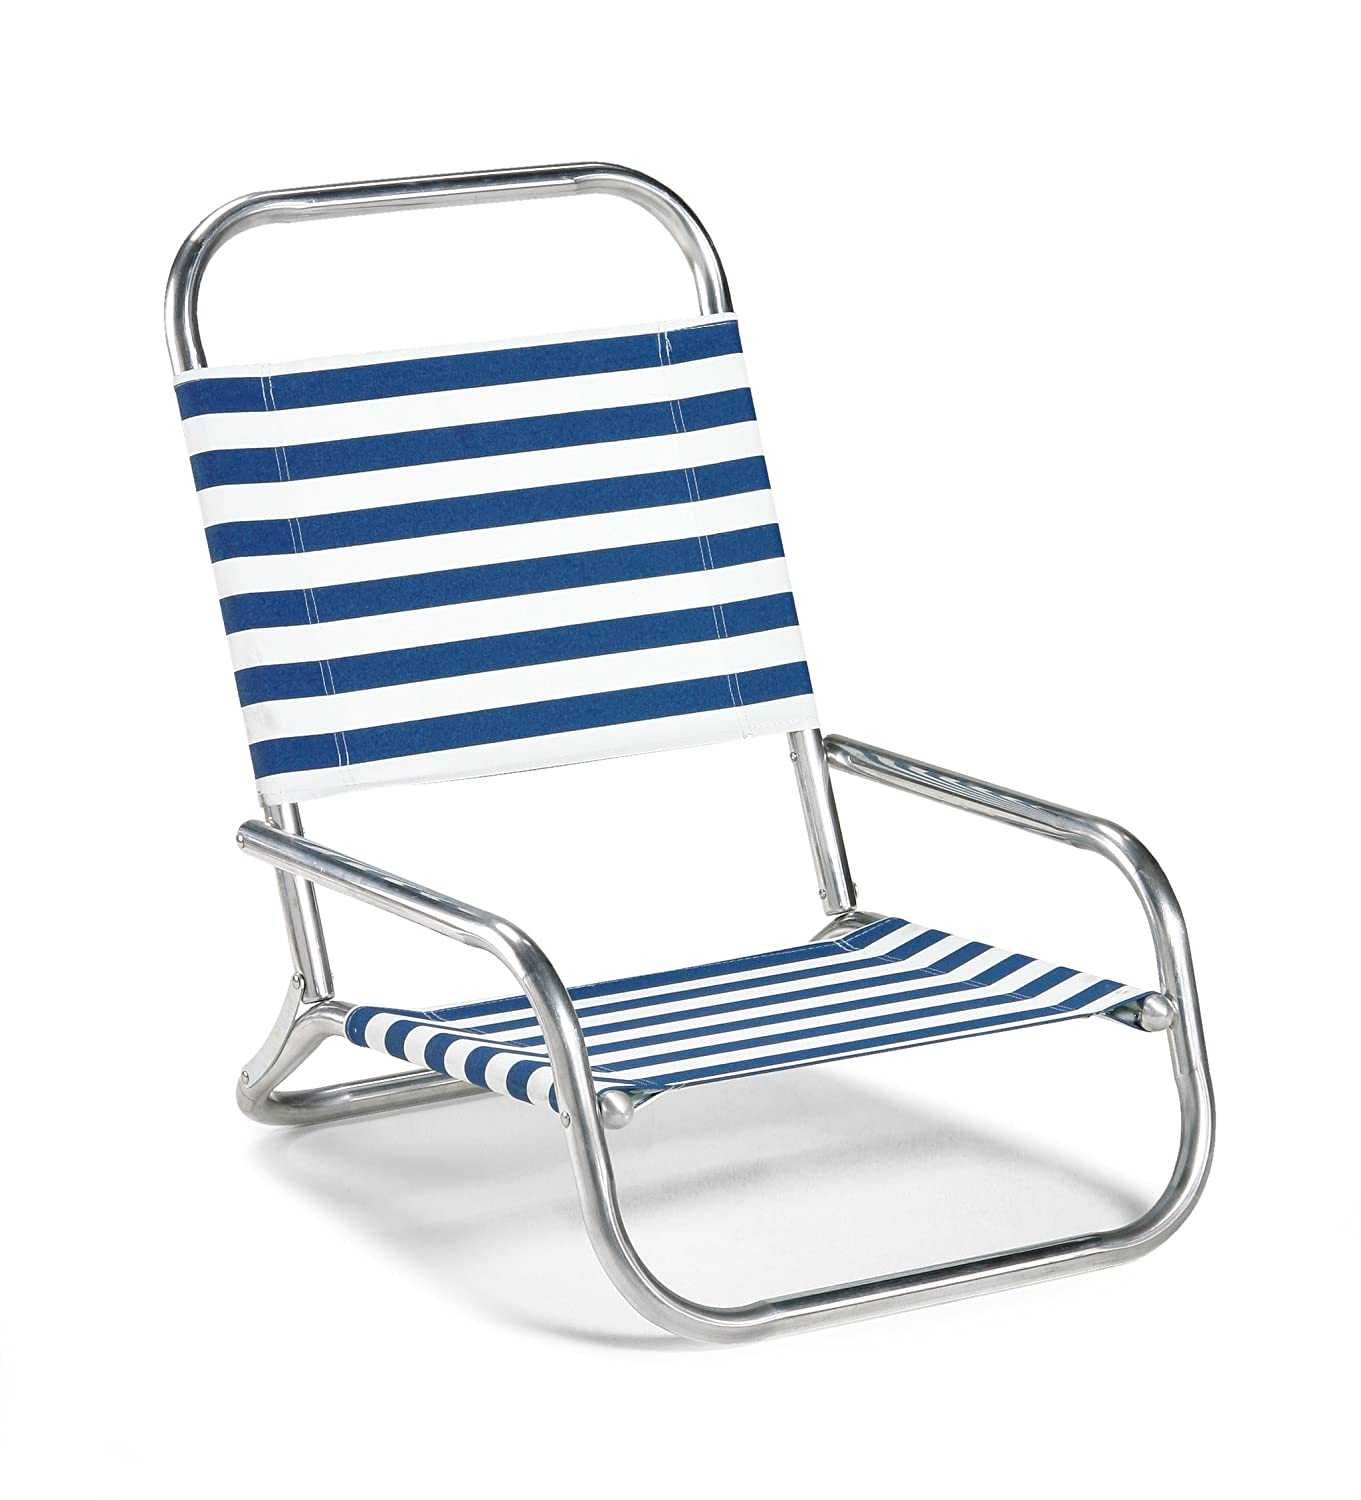 Telescope Casual Sun and Sand Folding Beach Chair, Blue White Stripe 73313601